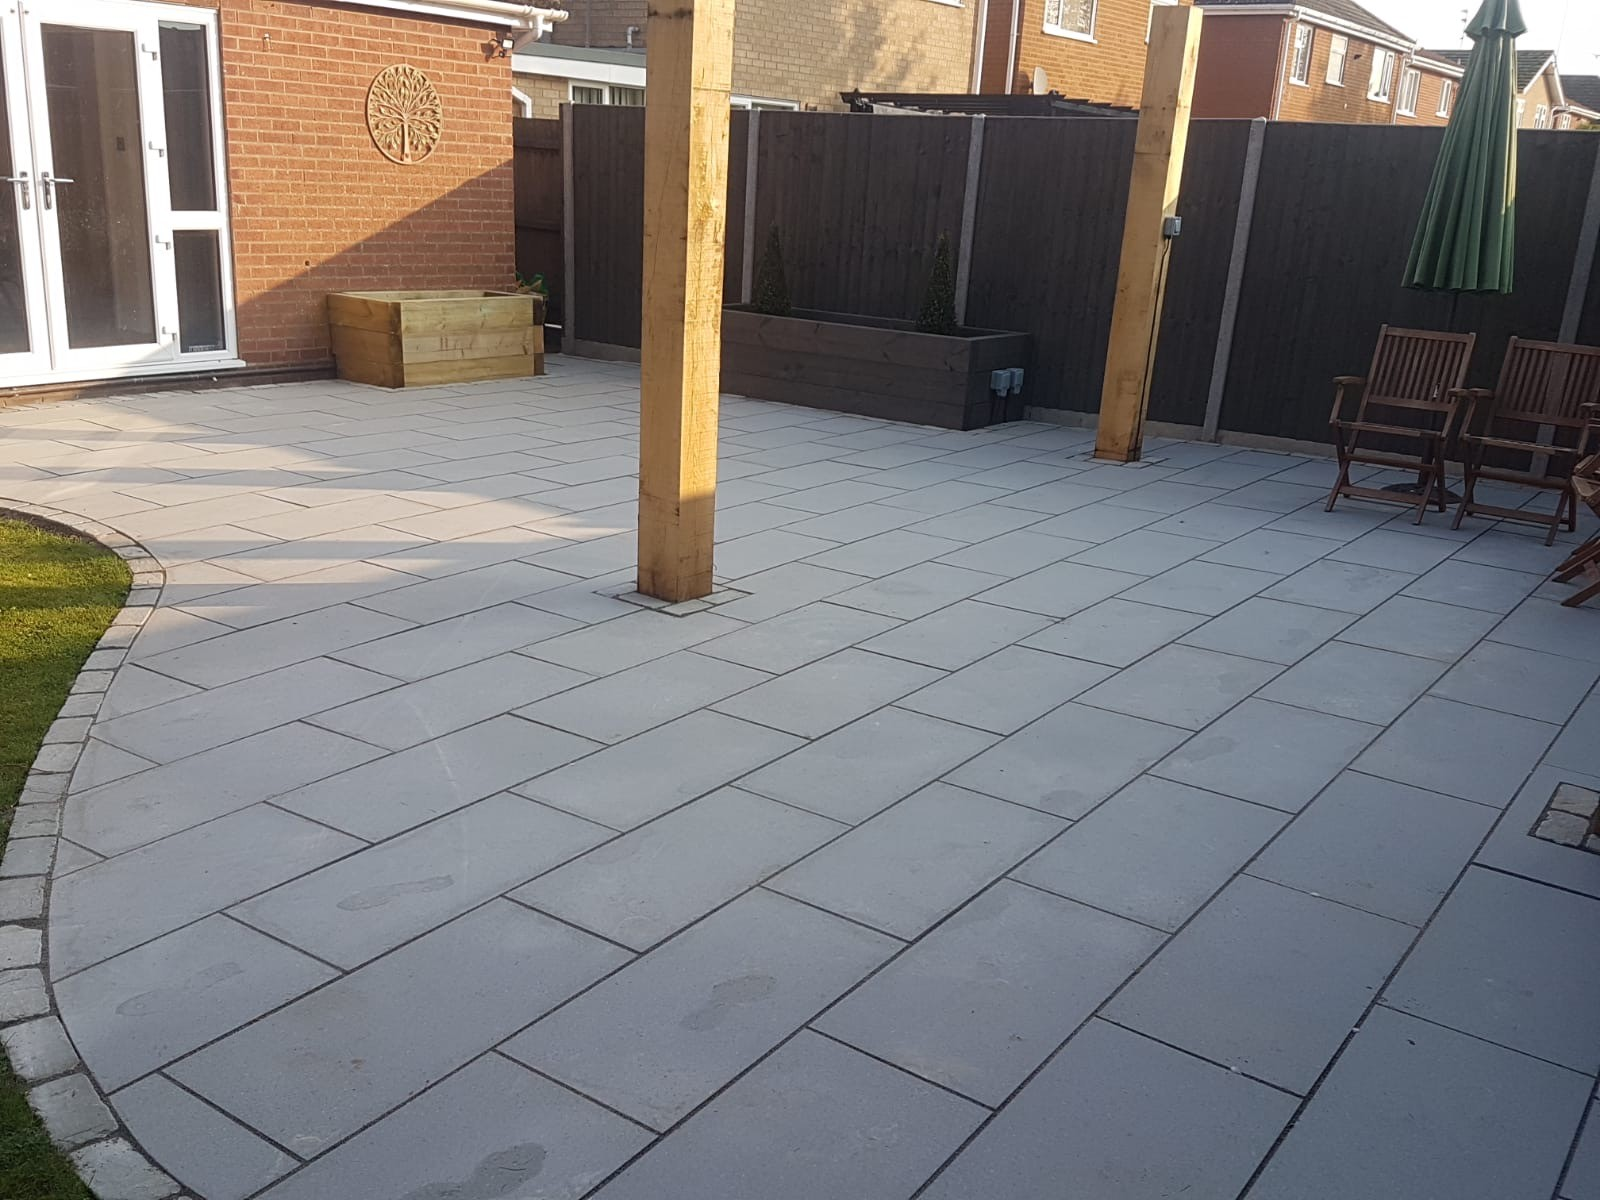 Copus Basalt Grey Porcelain 900 x 600 x 20mm Paving Slabs 19.20m²